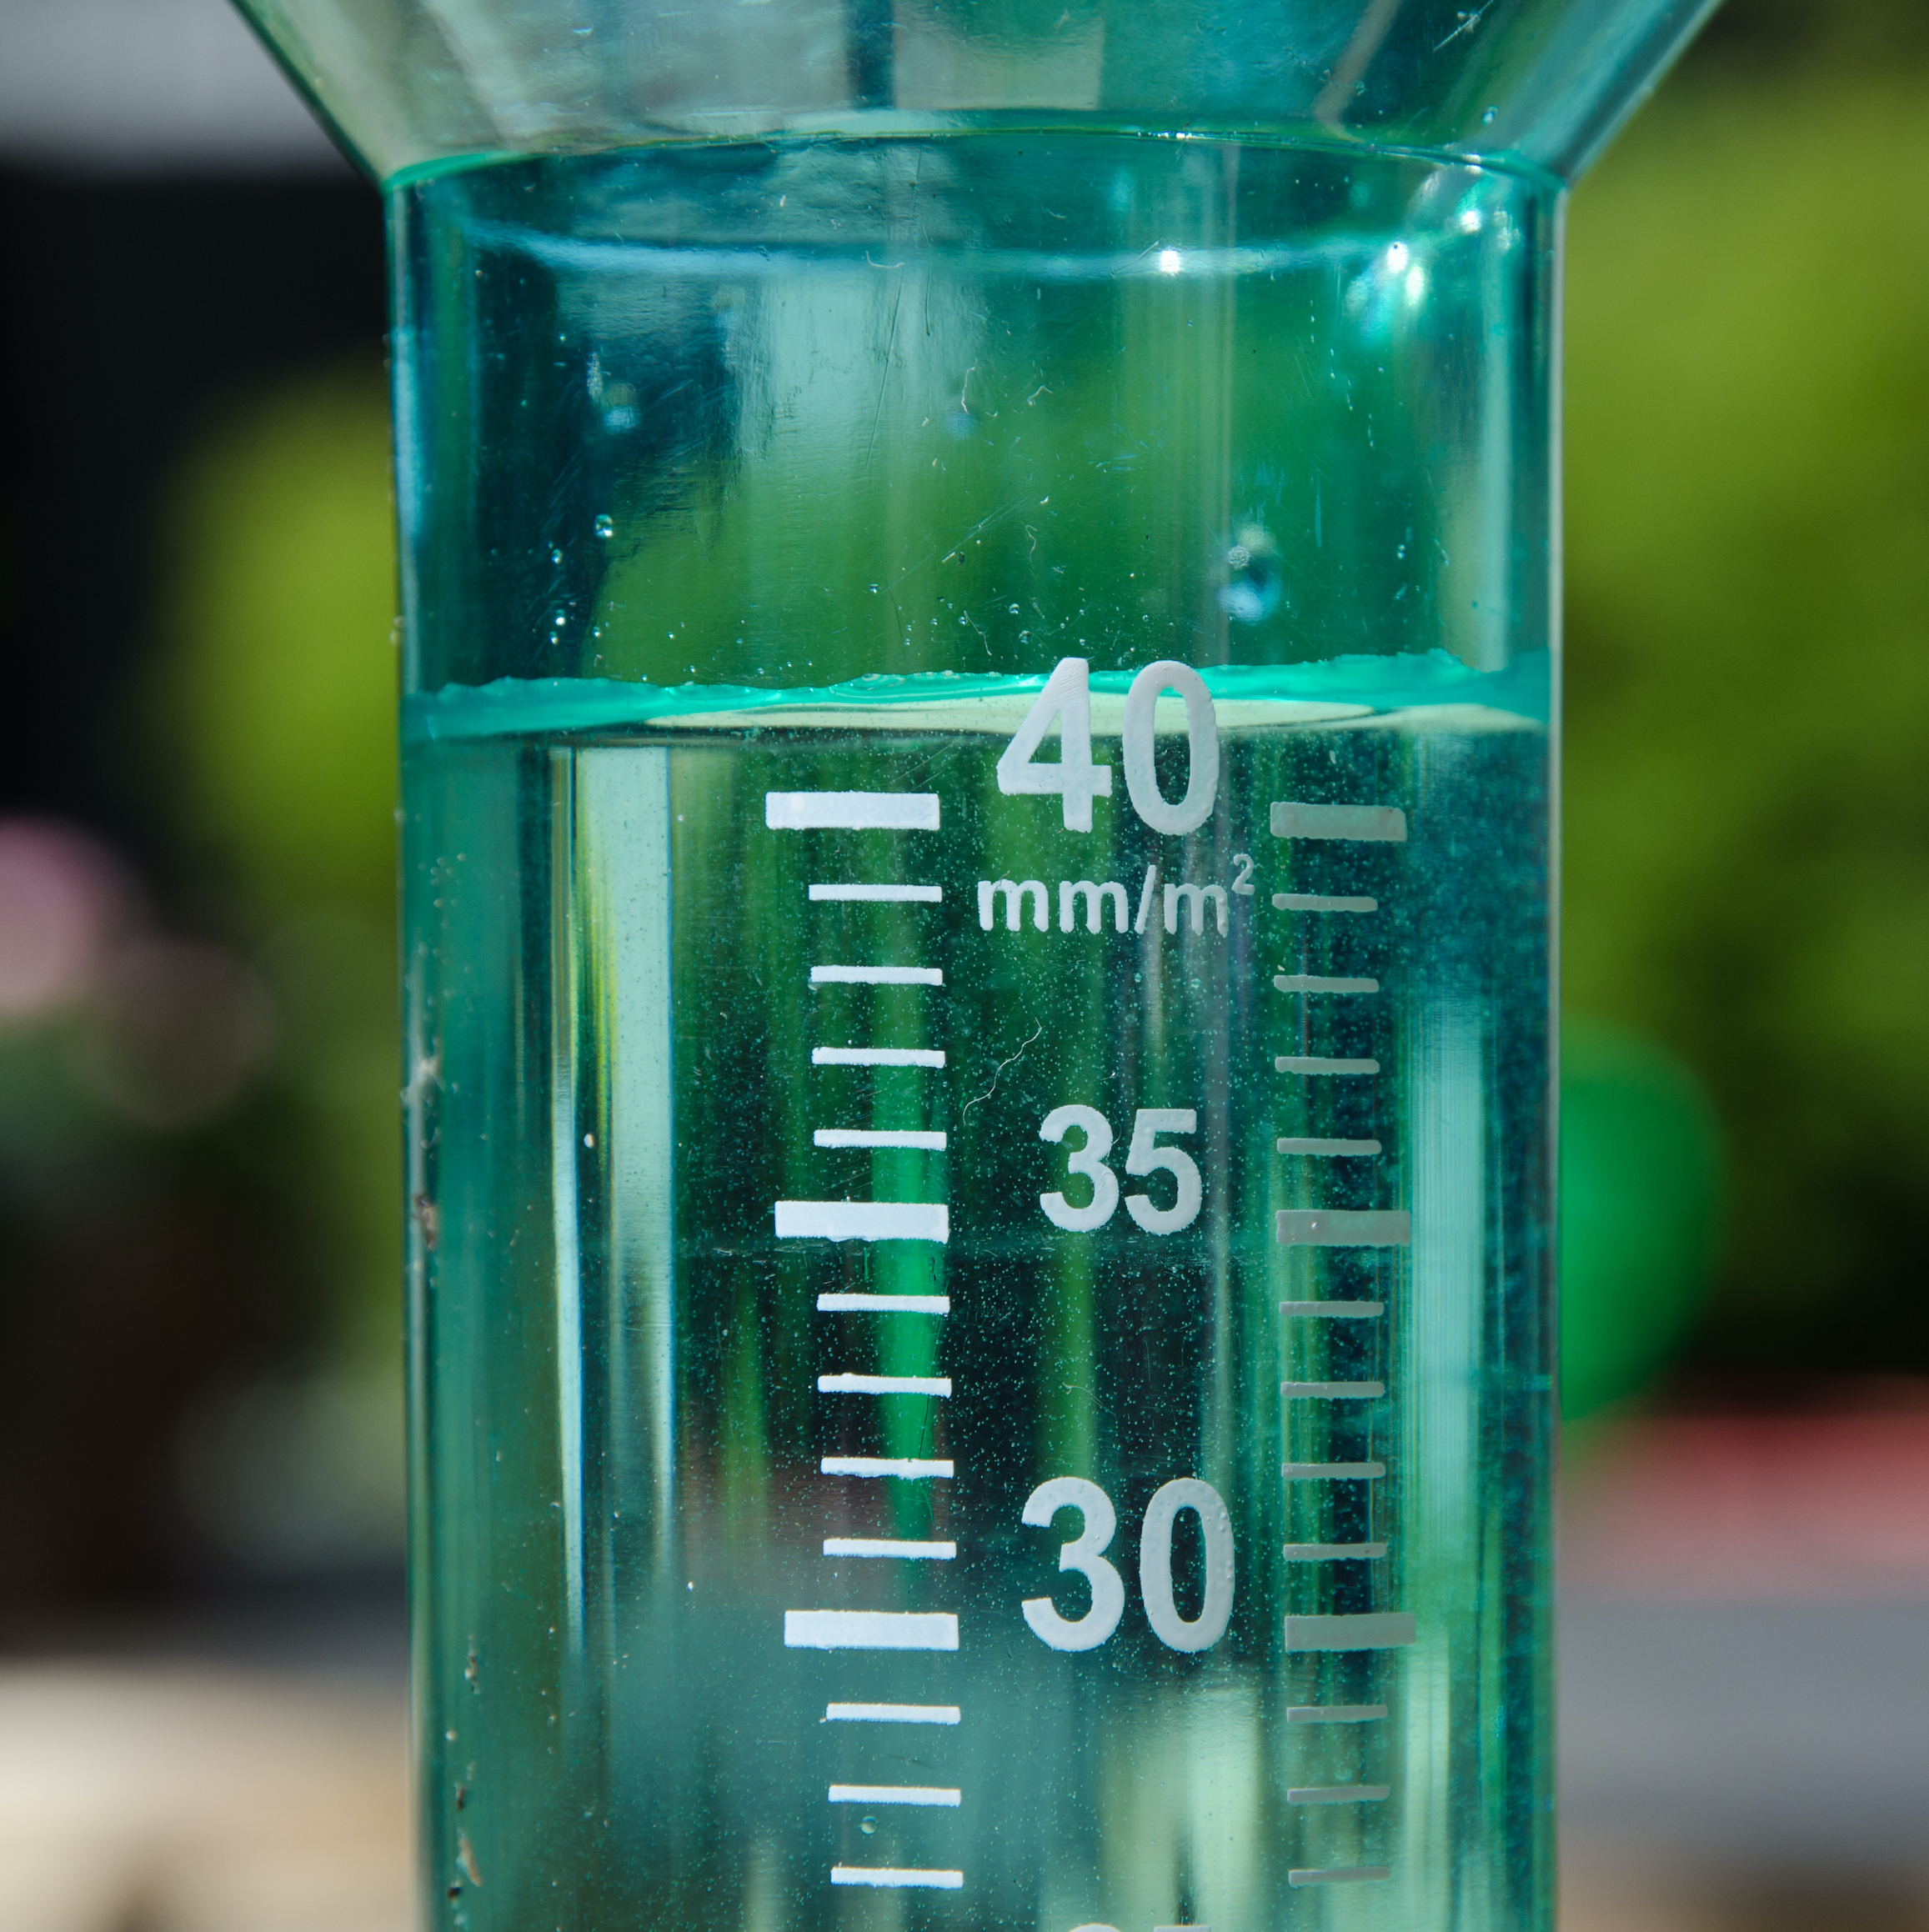 A filled rain gauge illustrating a rainy day